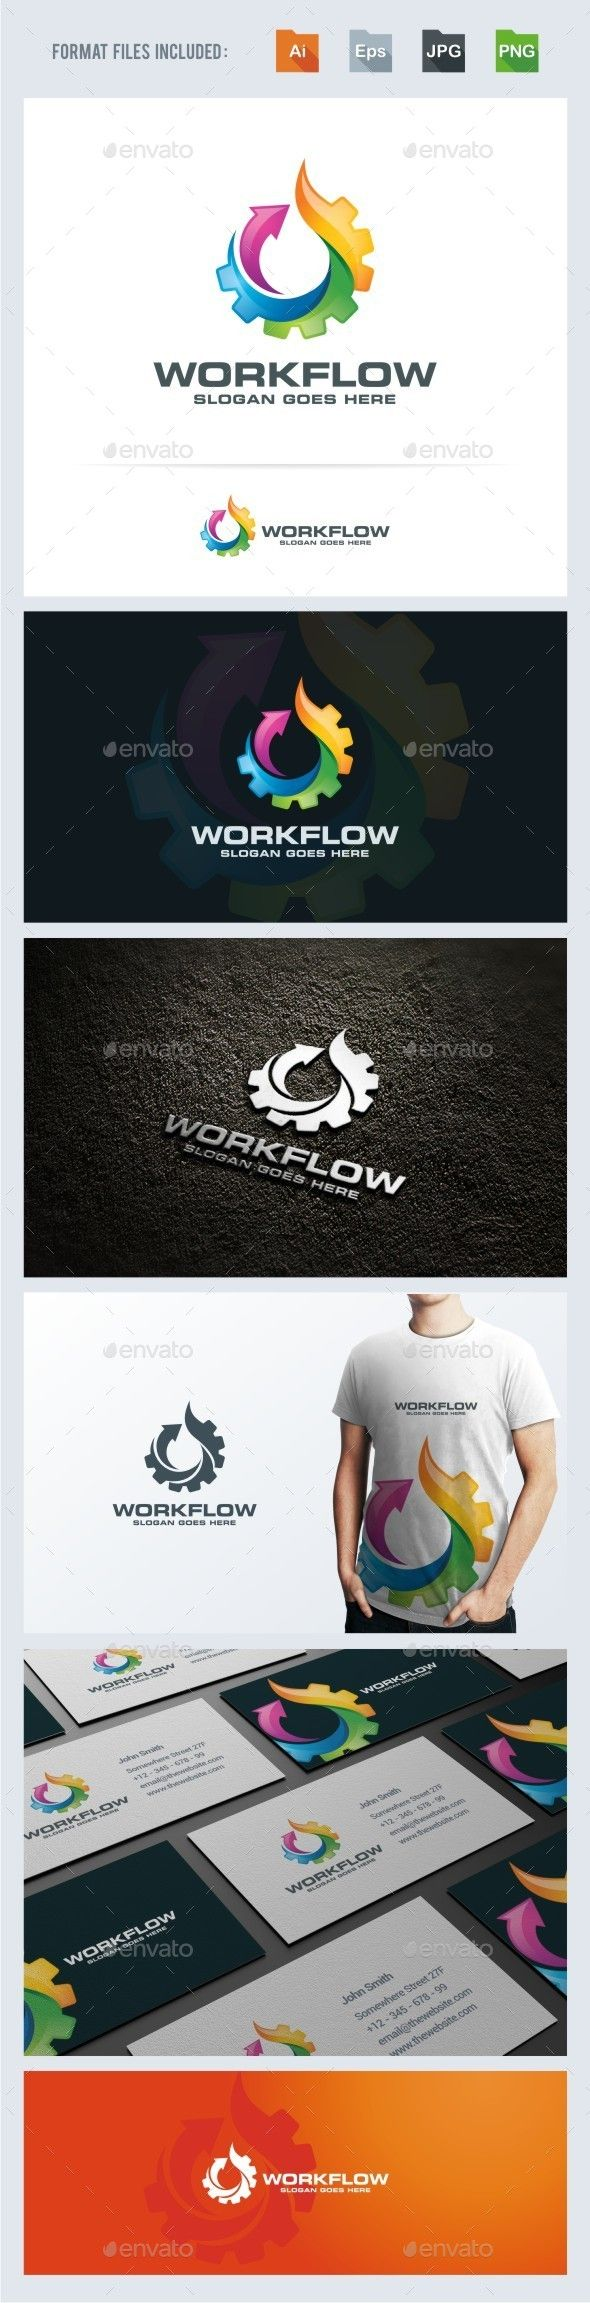 Work Flow - Gear Flame Logo Template PSD. Download here: http://graphicriver.net/item/work-flow-gear-flame-logo-template/14899543?ref=ksioks